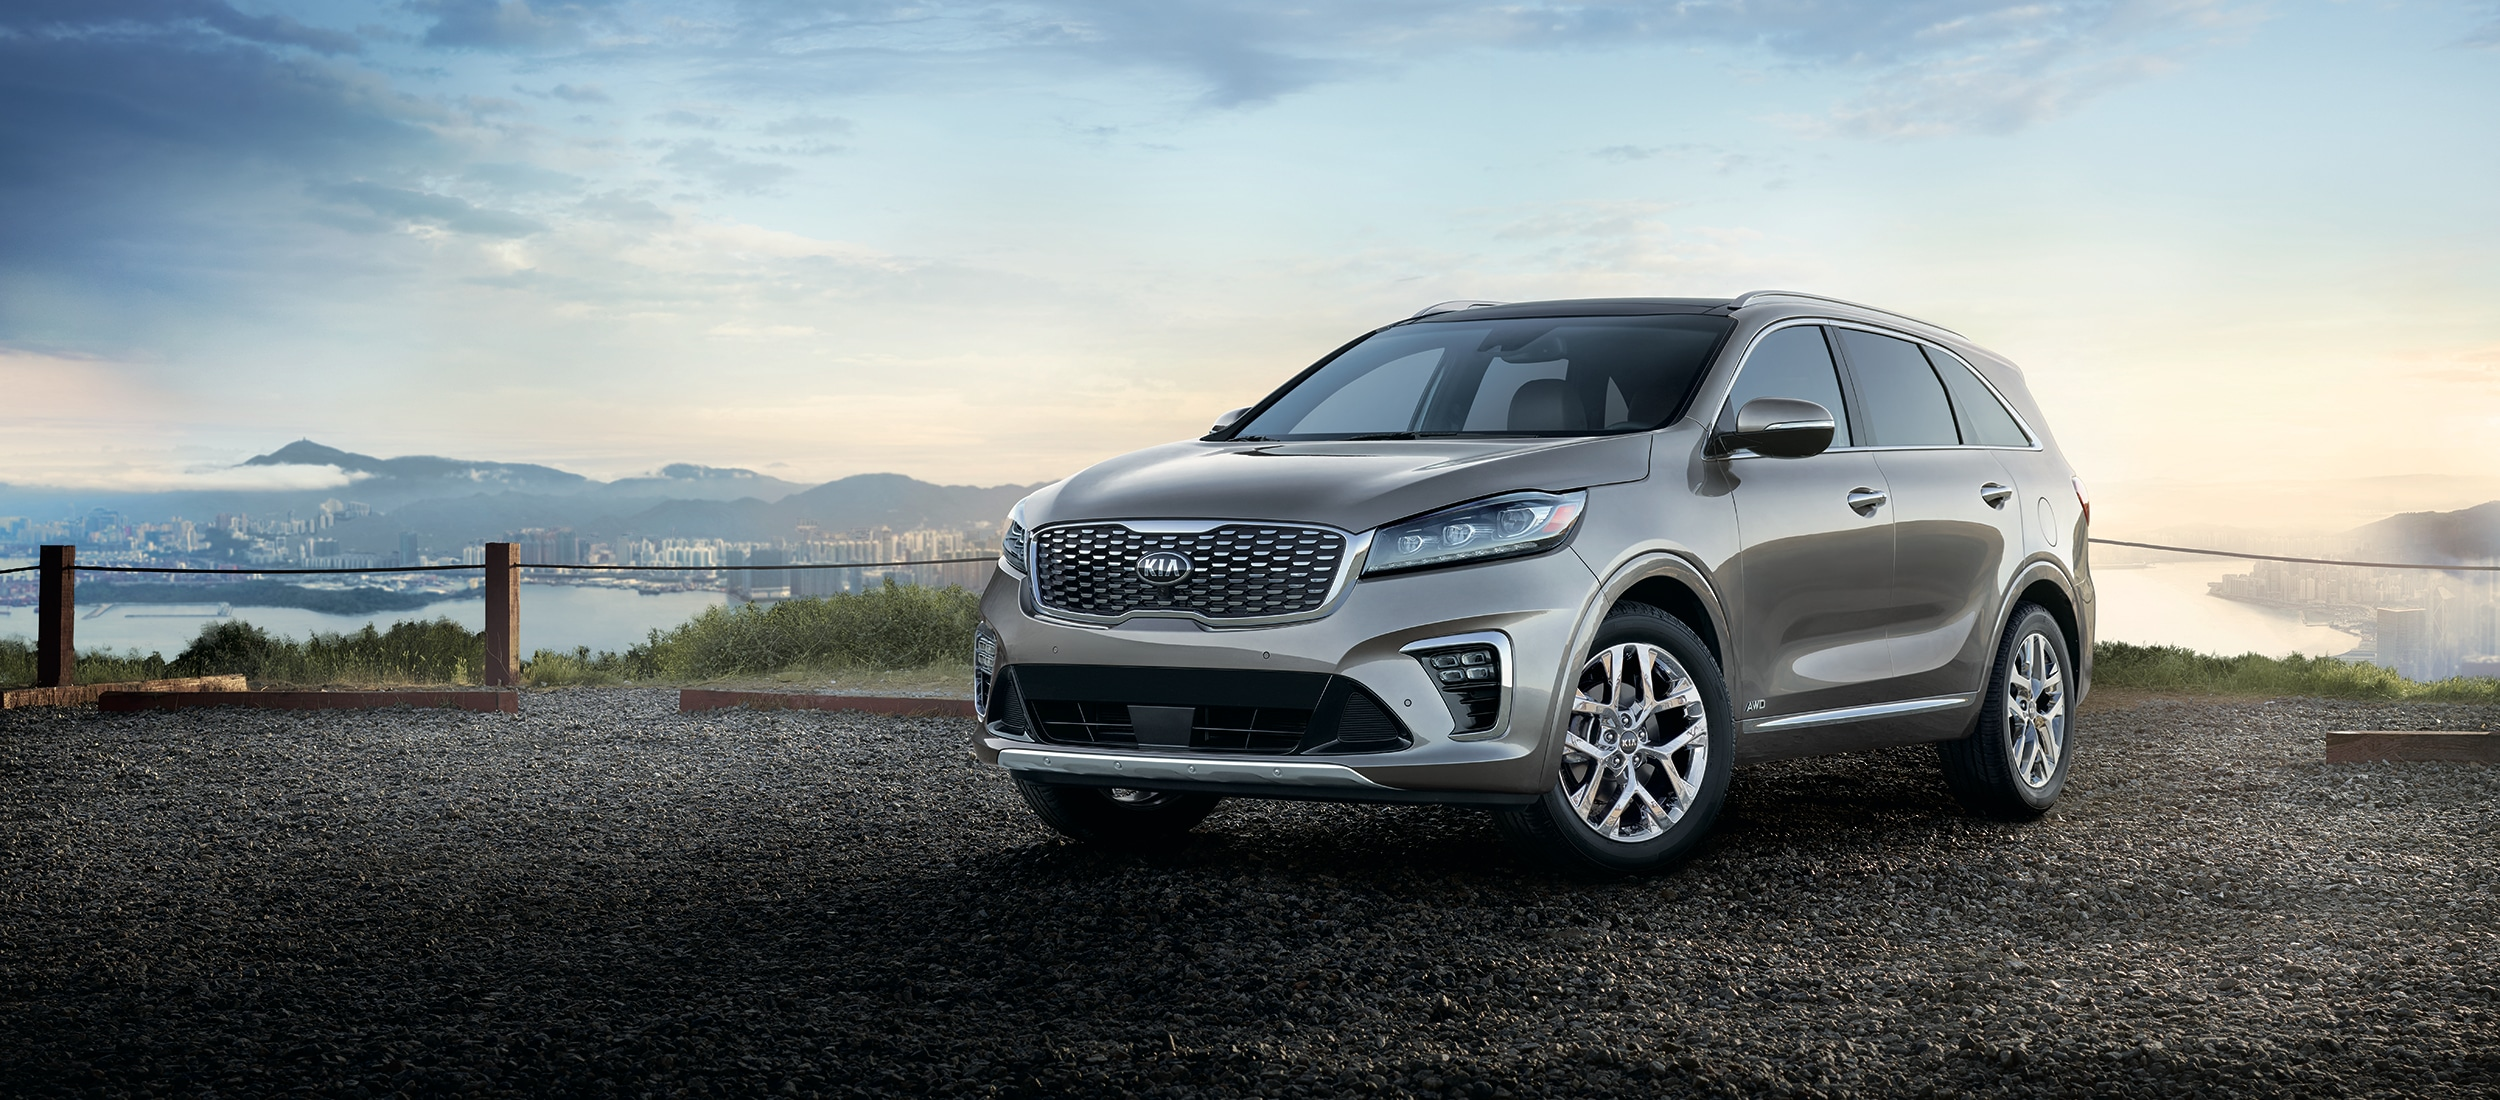 2019 Kia Sorento driving on forest road